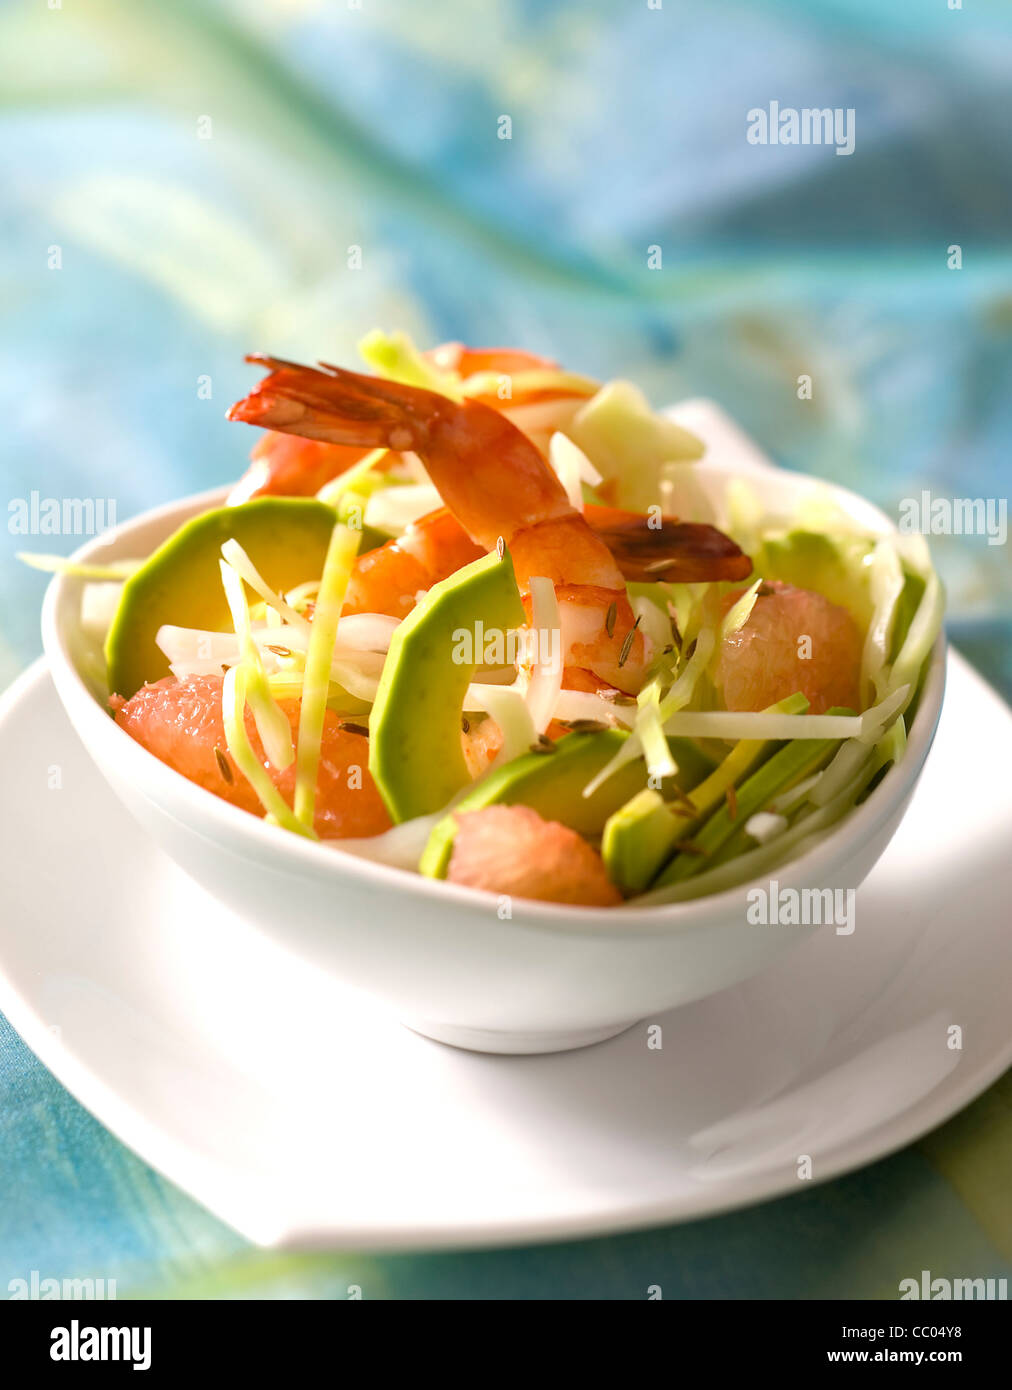 Avocado, Grapefruit and Gambas Salad Stock Photo